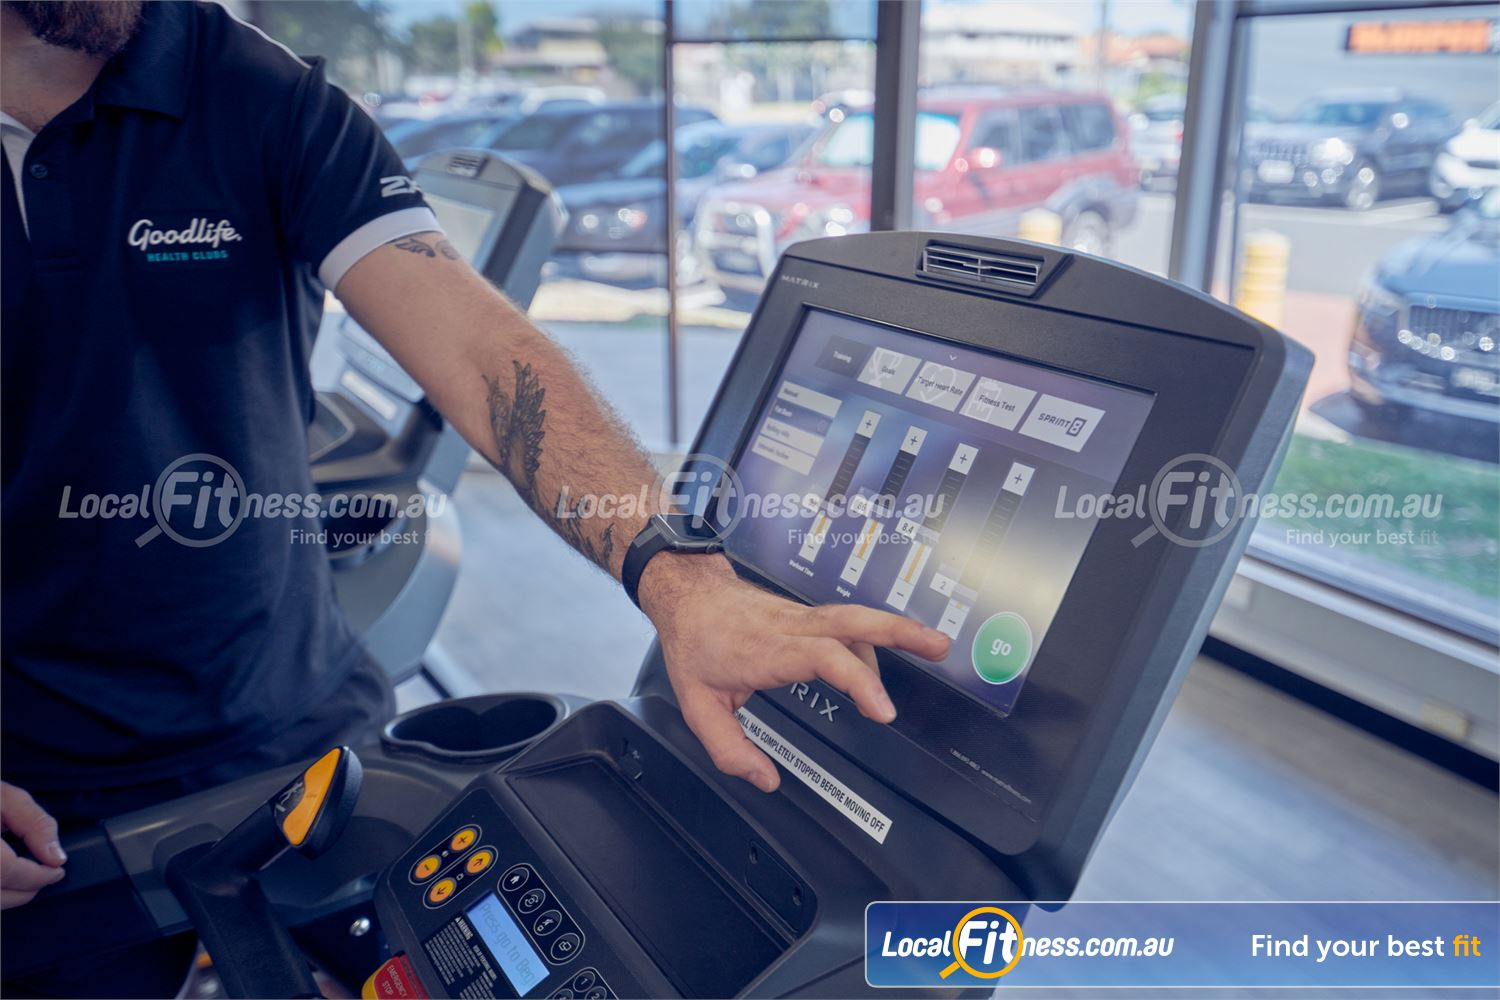 Goodlife Health Clubs Dingley Village State of the art cardio includes personal entertainment screens.